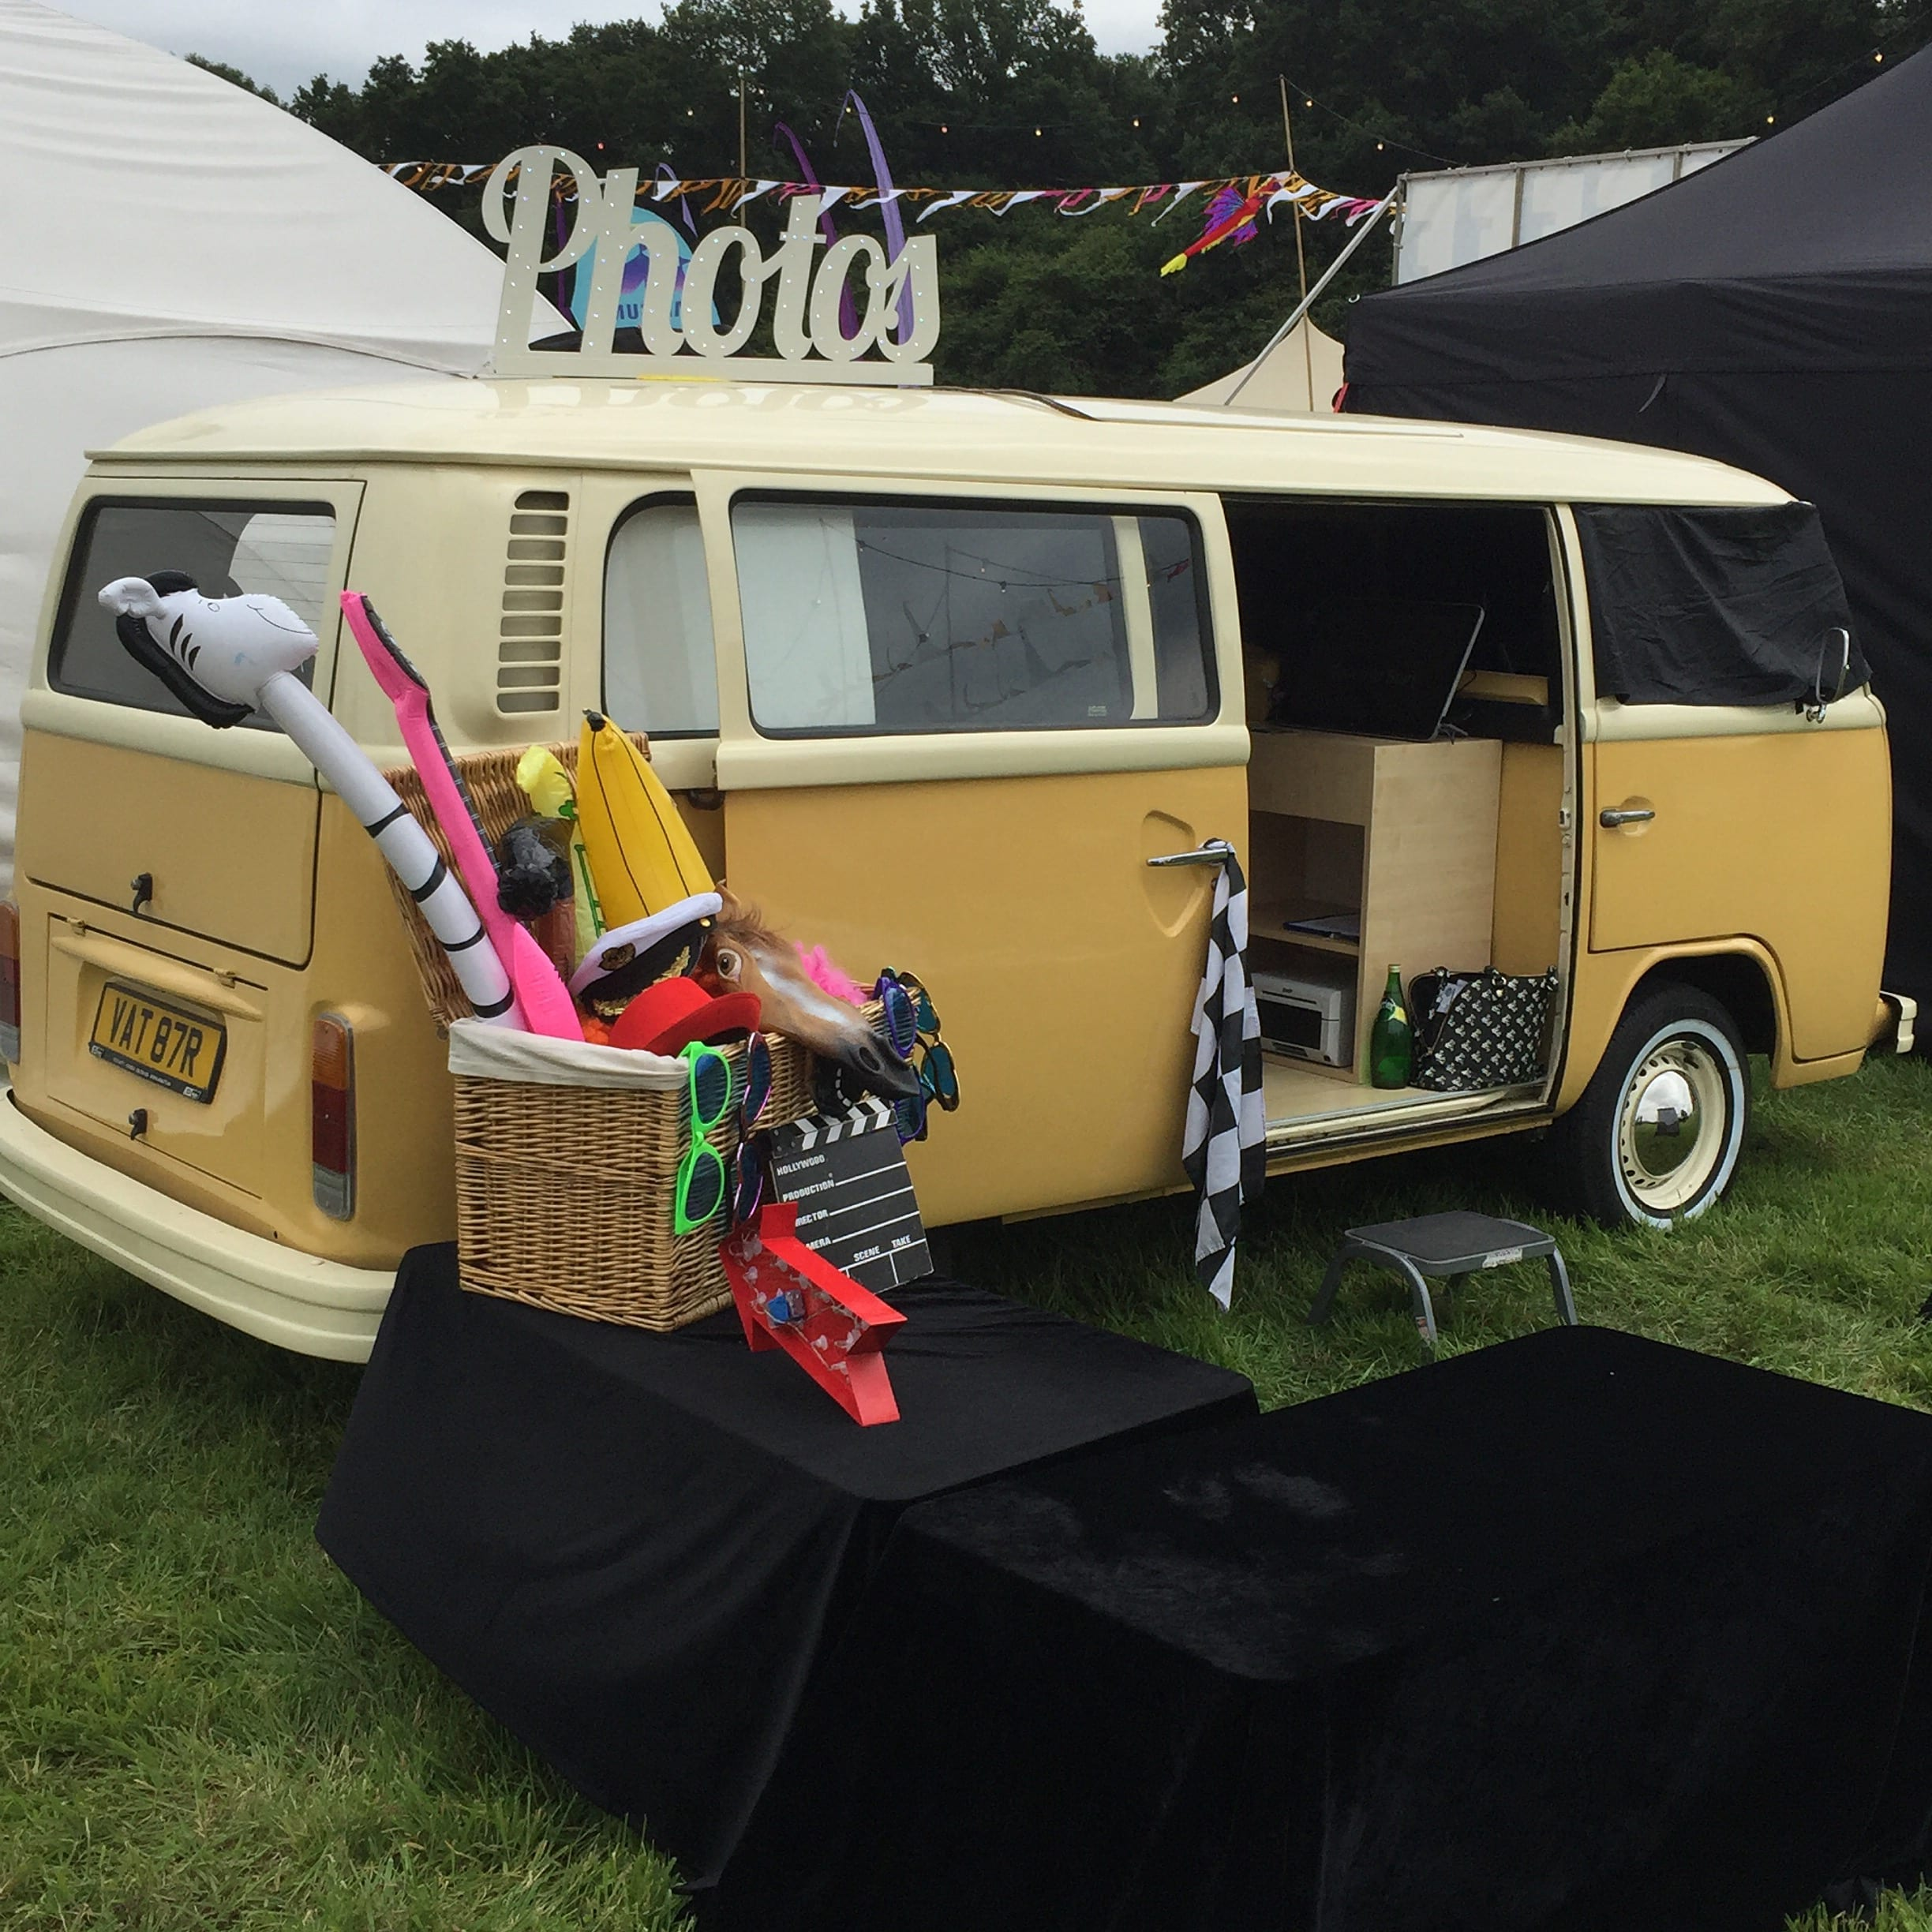 Buttercup Bus campervan photobooth for outdoor events